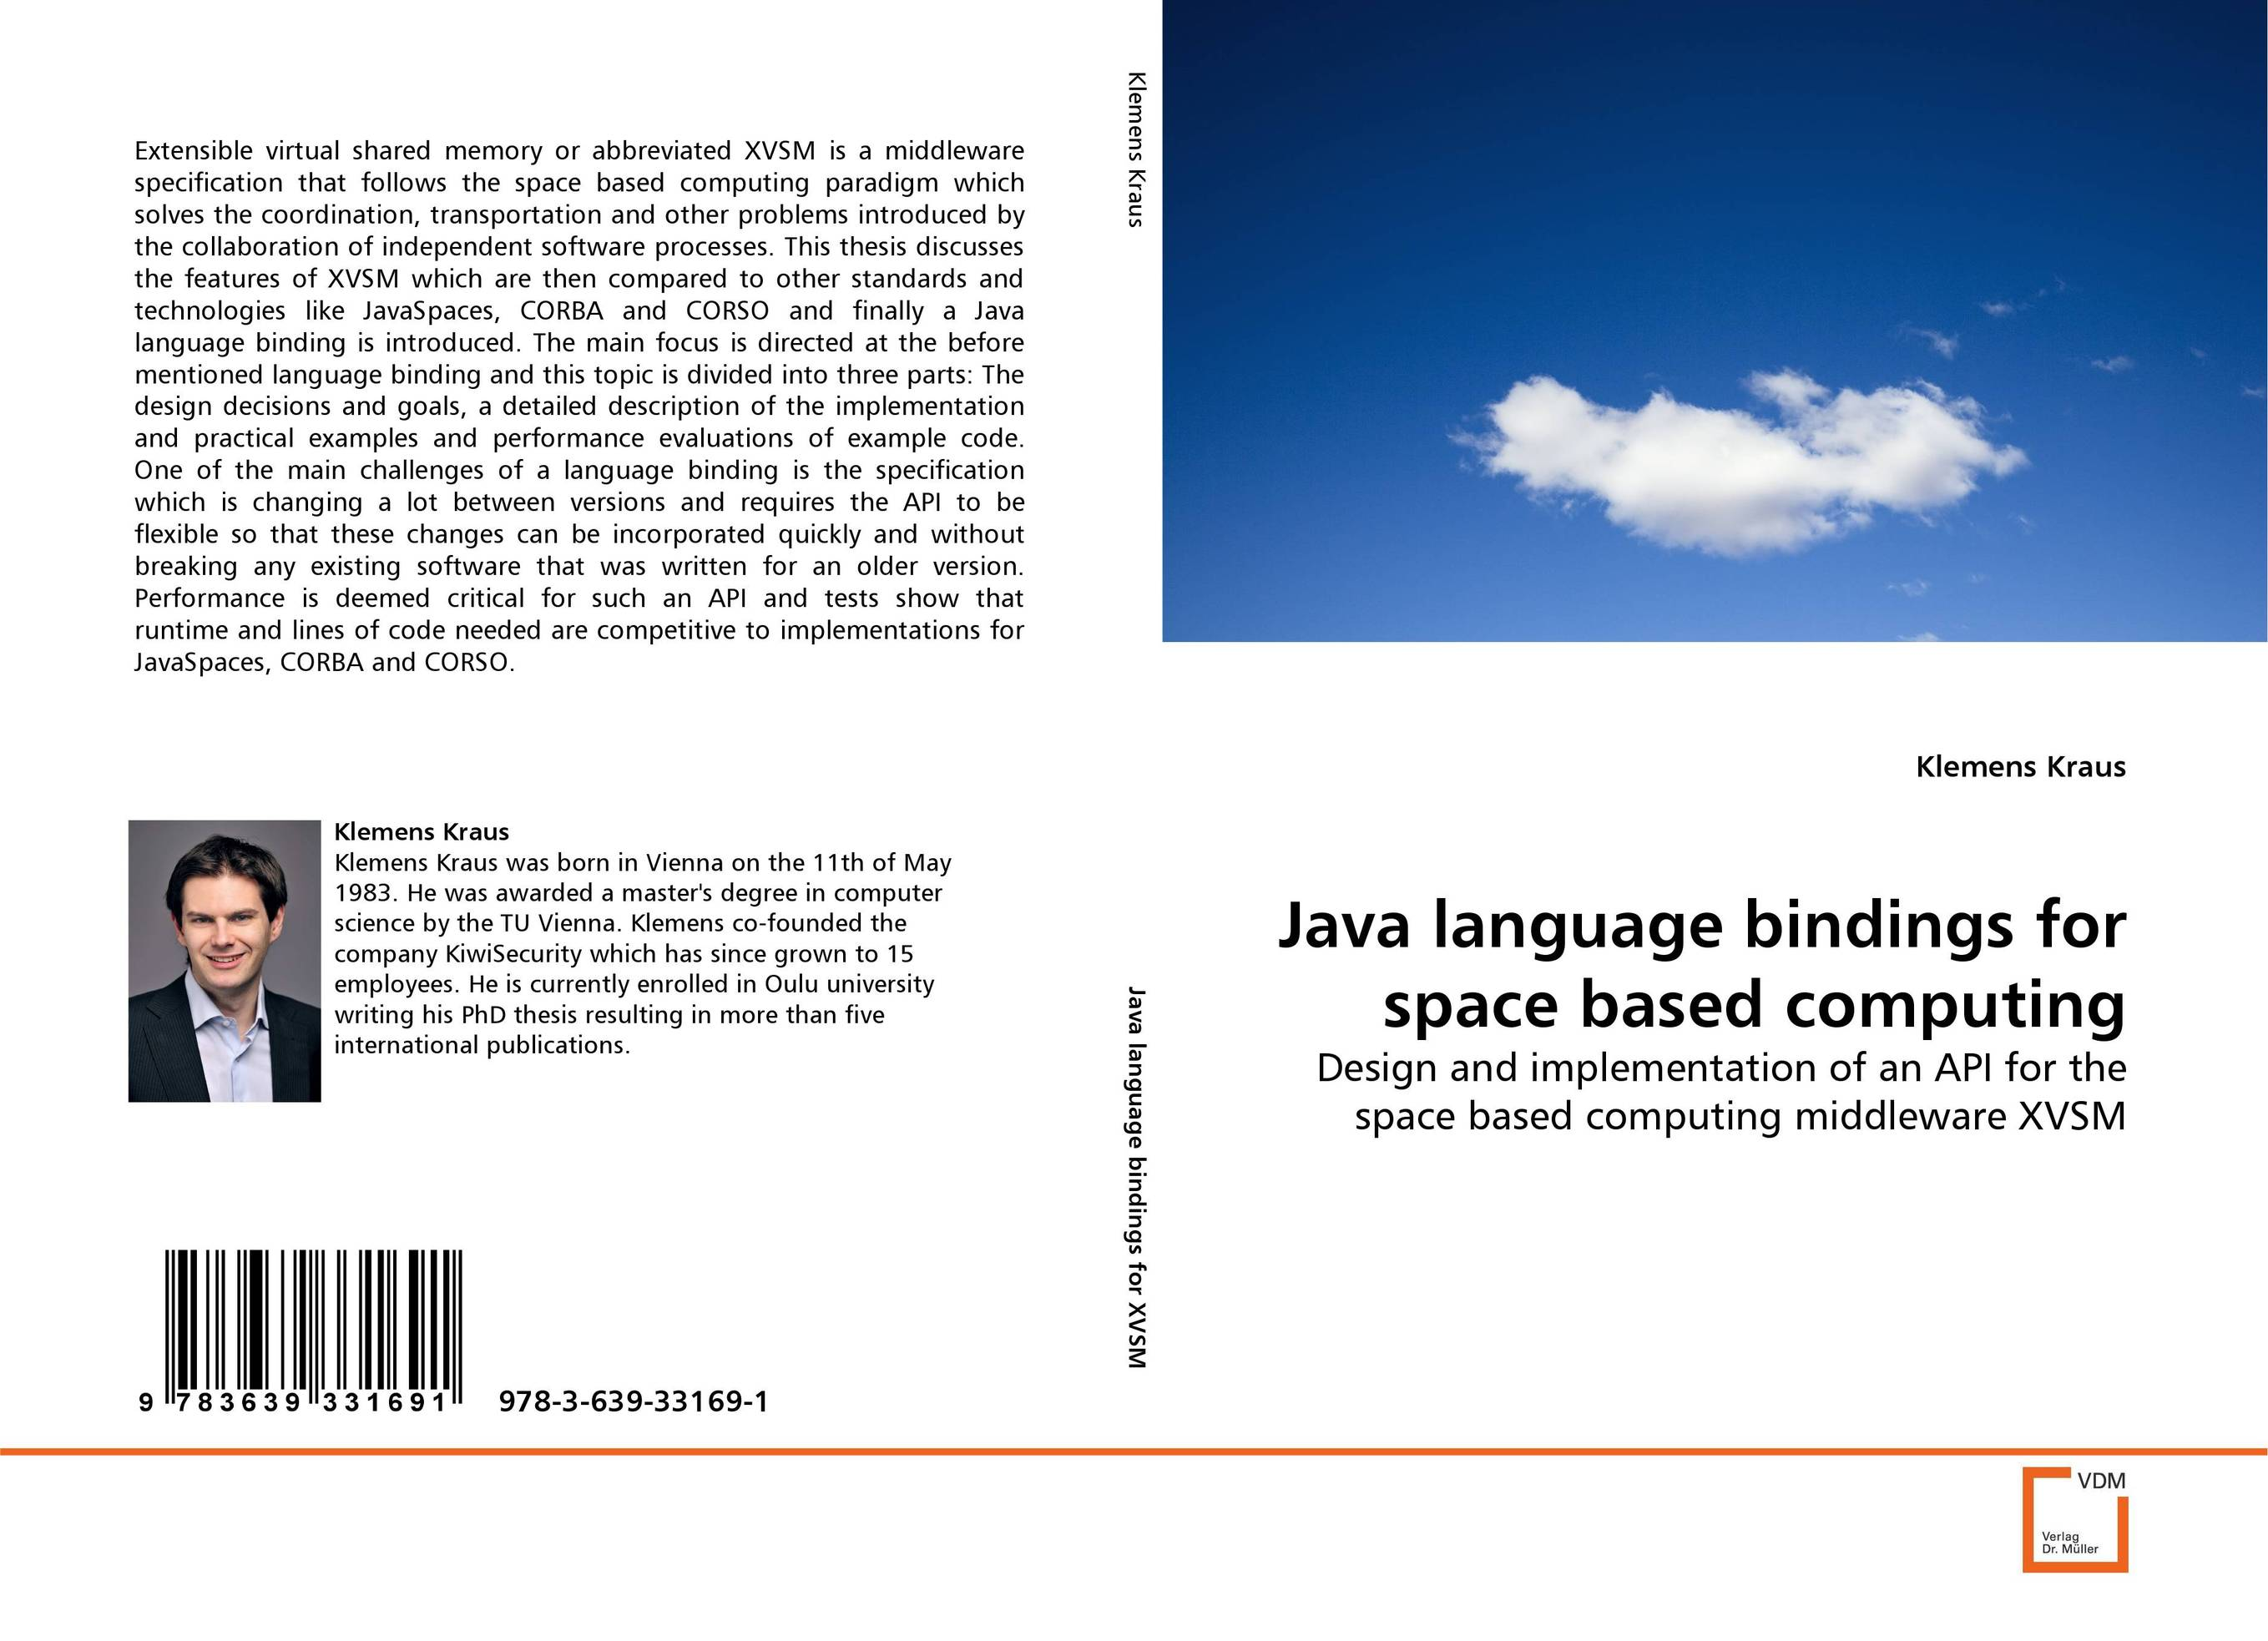 Java language bindings for space based computing java language bindings for space based computing